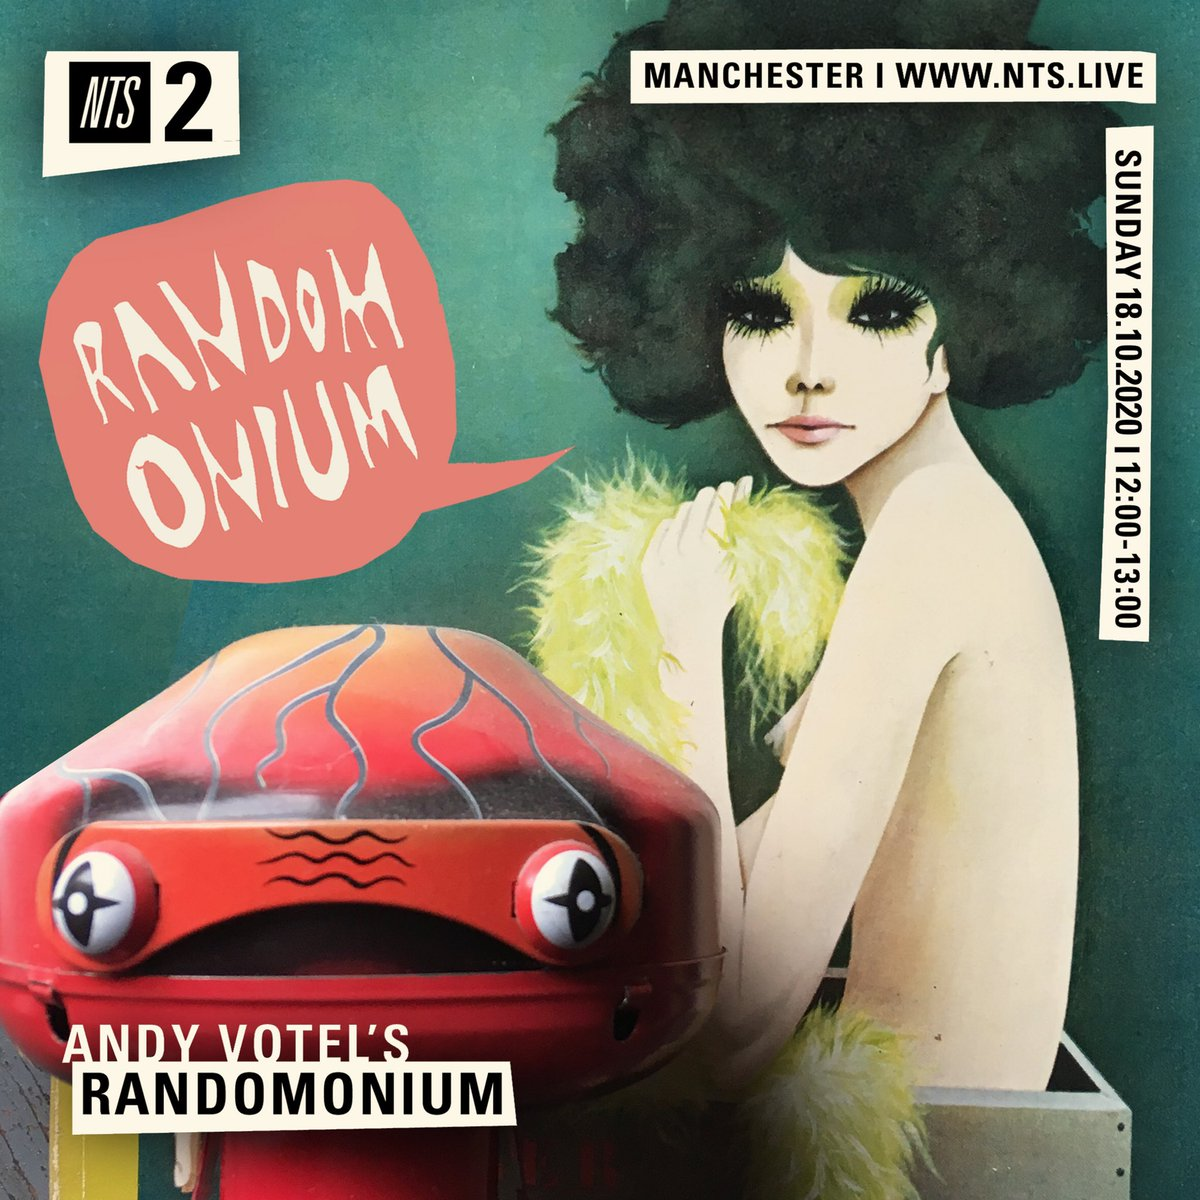 NEW episode of my monthly #RANDOMONIUM radio show for @NTSlive goes out today at MIDDAY! Send me your EARS! 🙏✌️